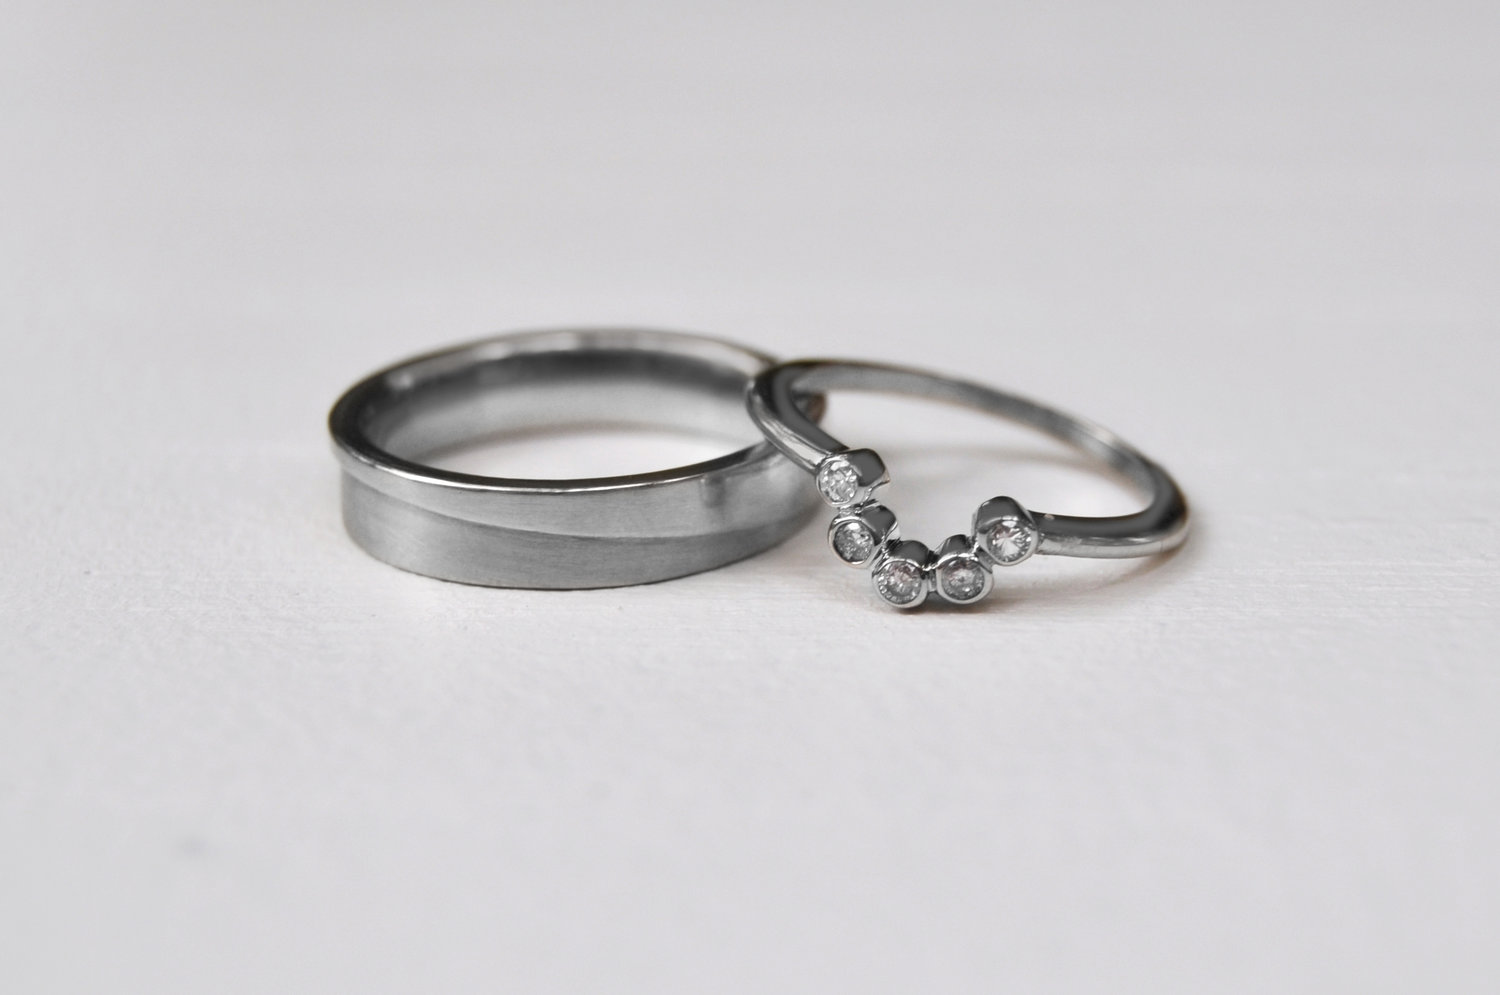 White gold and diamond wedding bands for Maryam and Jared